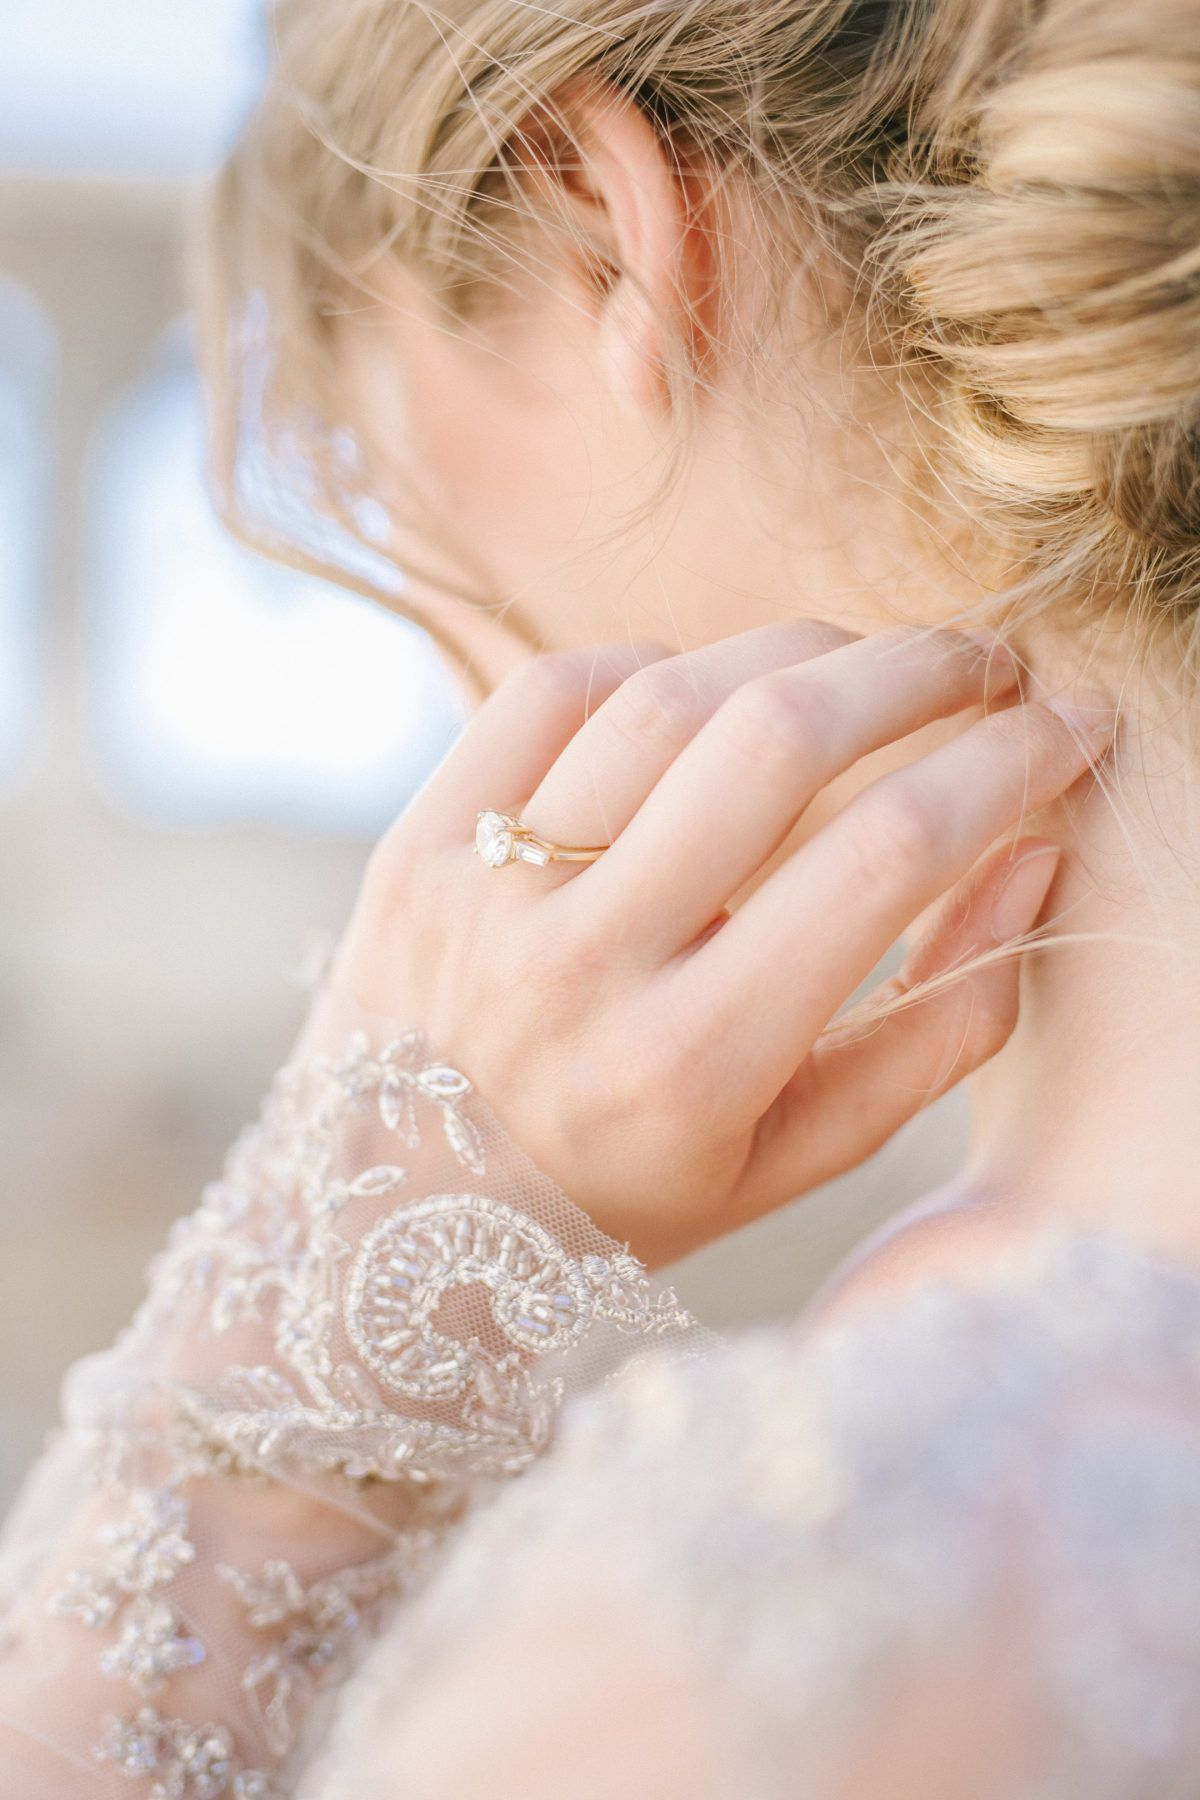 Blending Old + New for Unforgettable Bridal Style